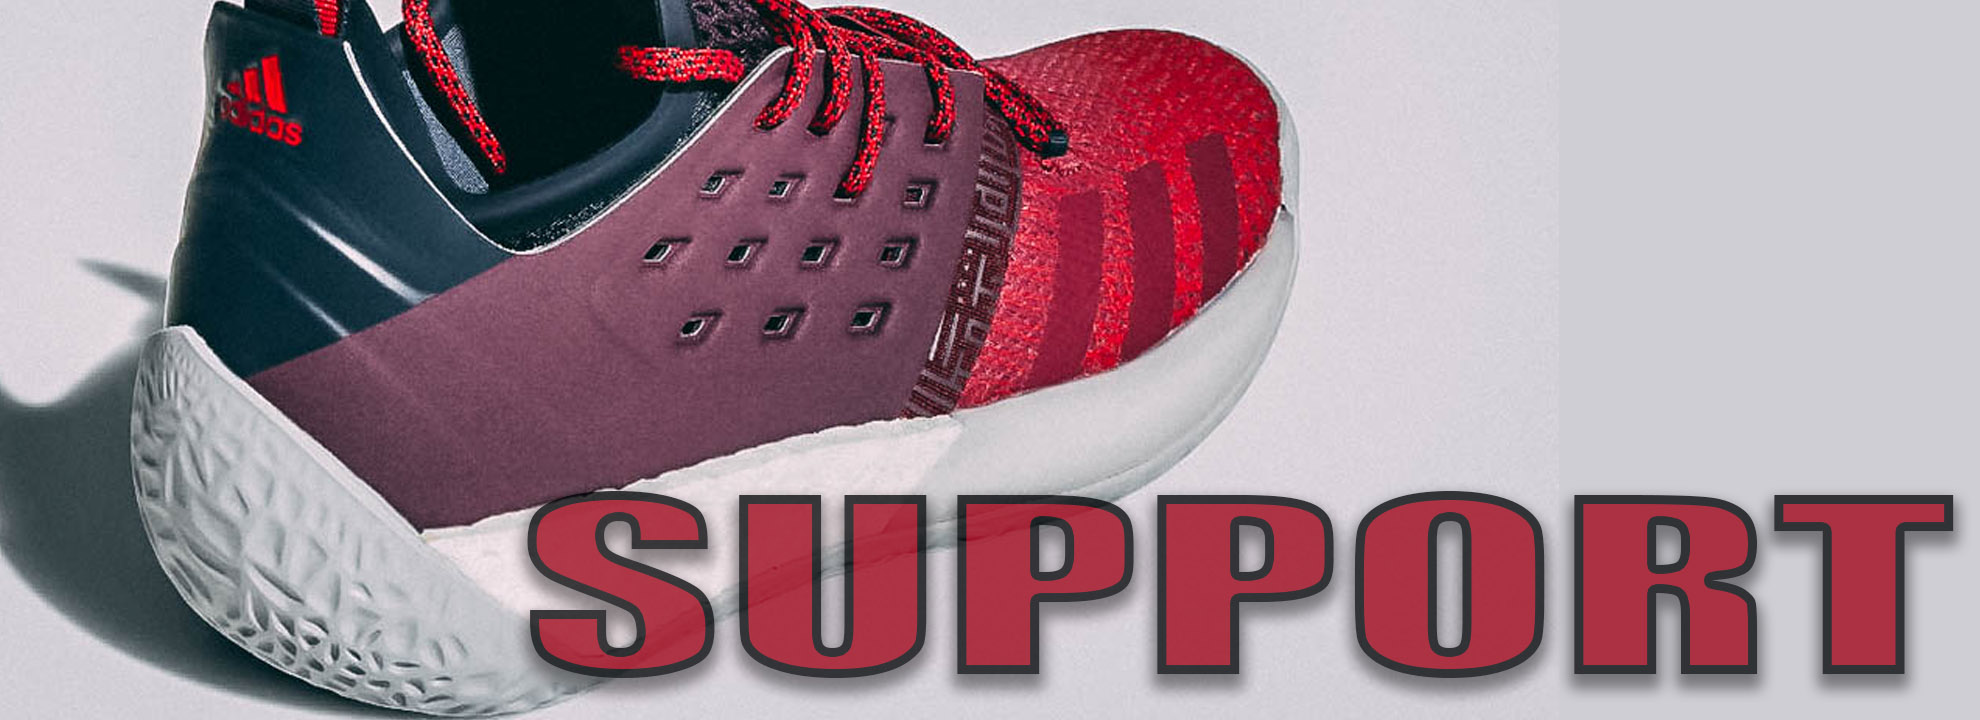 8f95c85c17a adidas harden vol 2 performance review anotherpair support - WearTesters